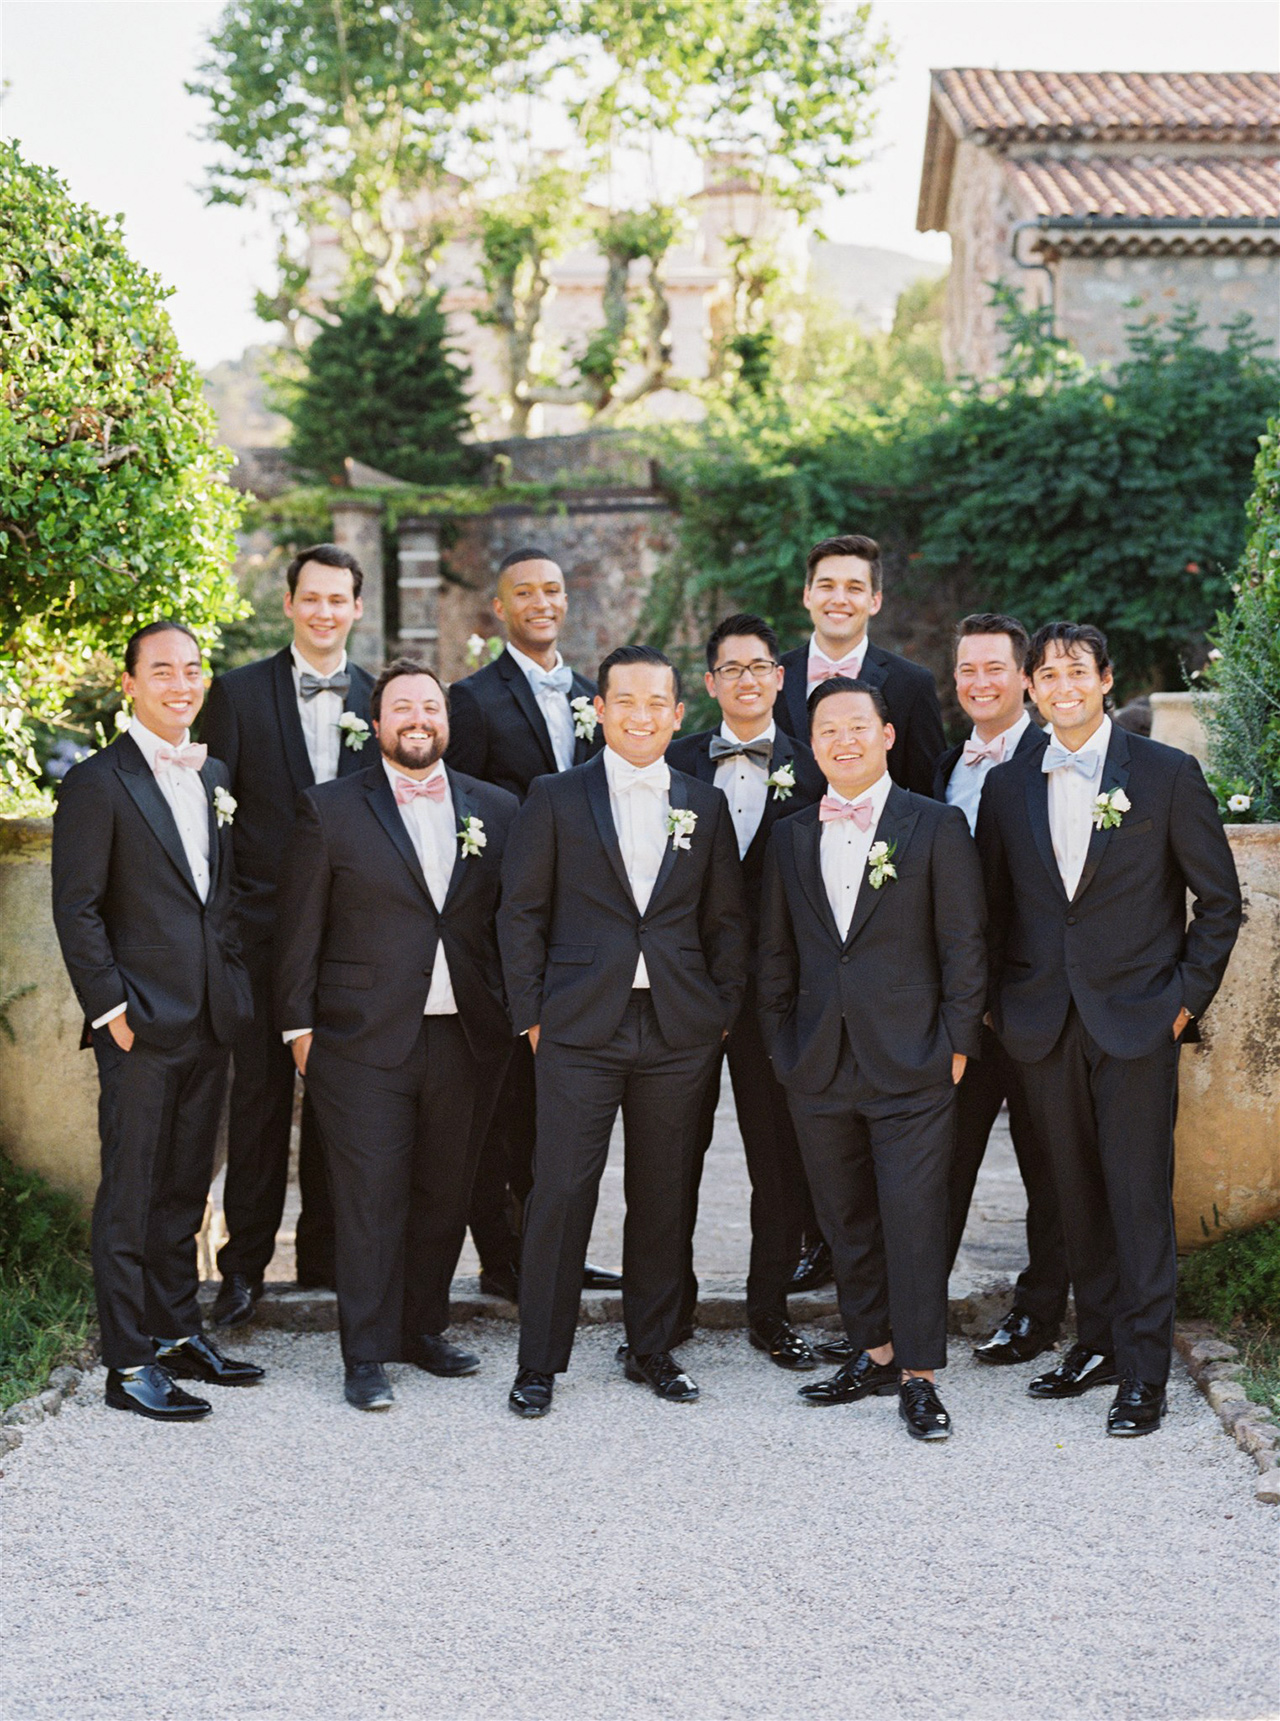 groom groomsmen pose outdoors tuxedos bowties